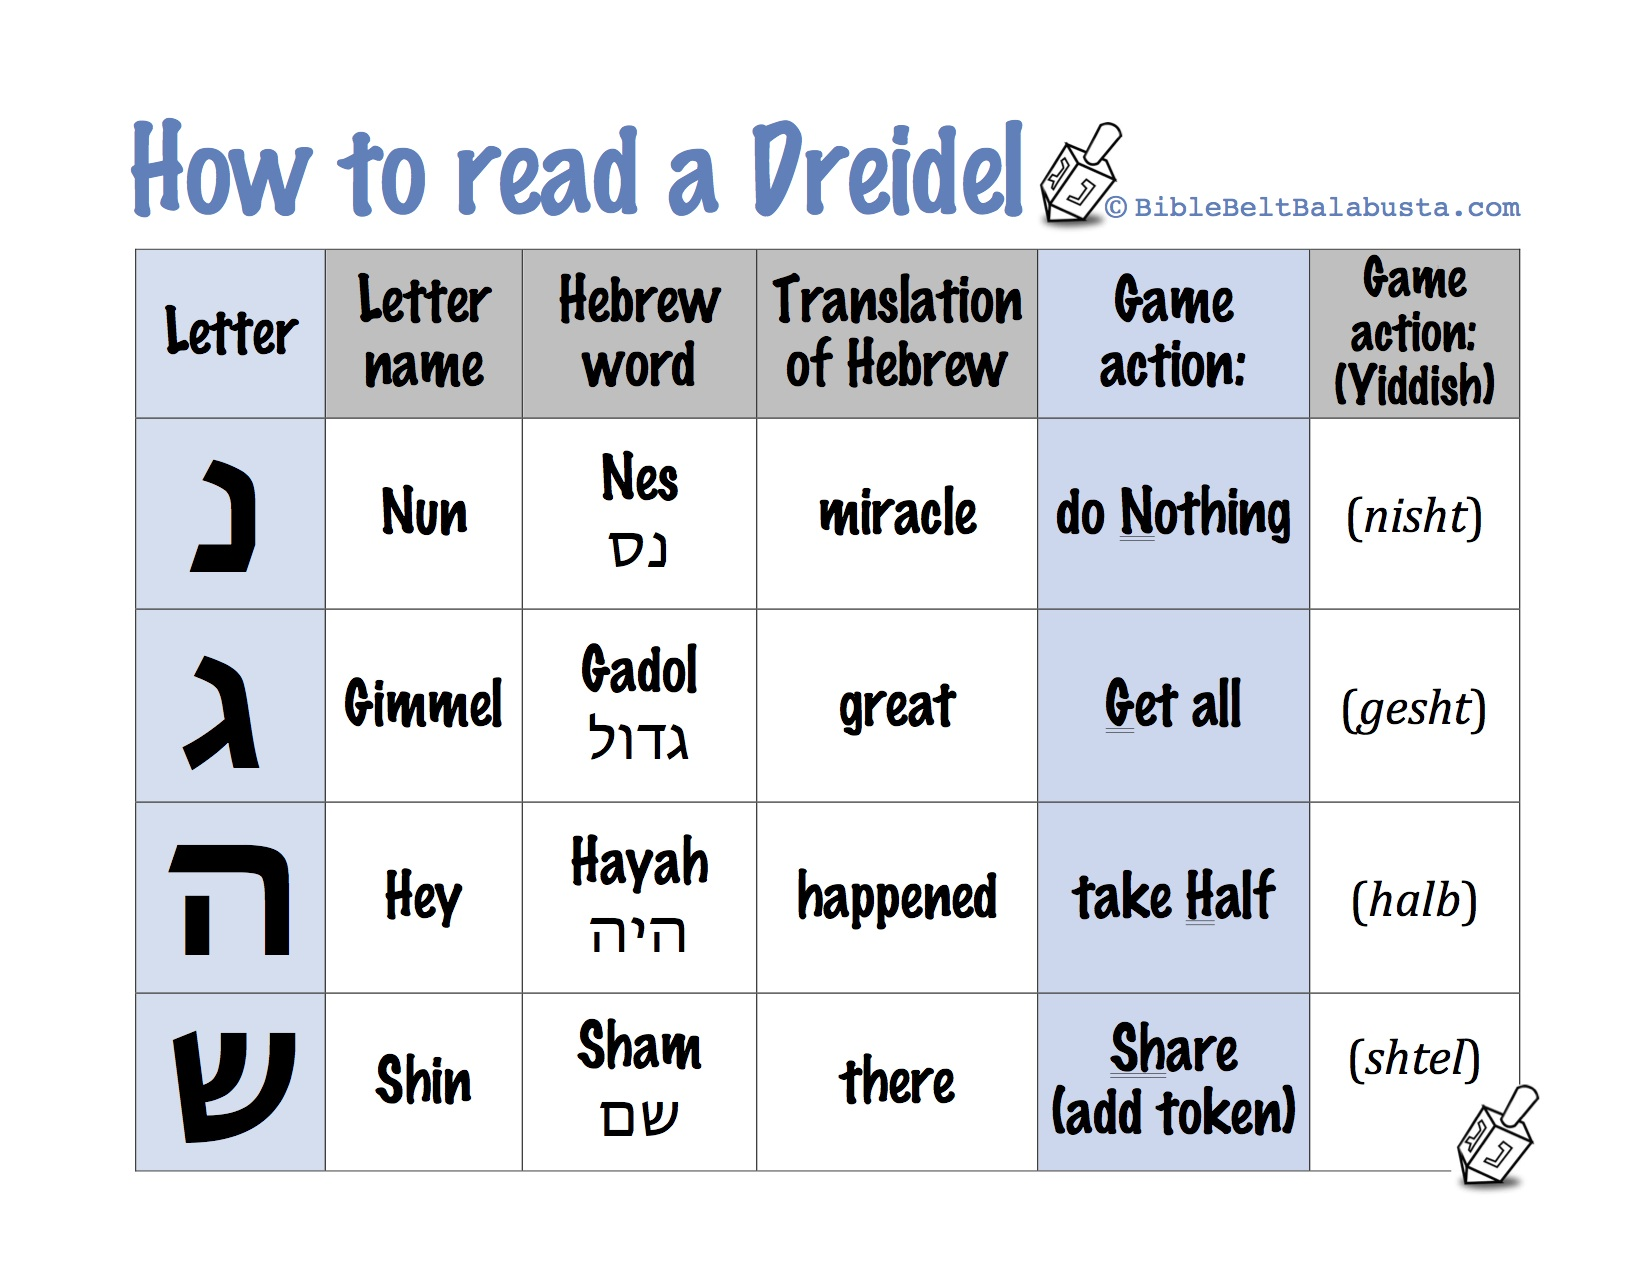 photo regarding Dreidel Game Rules Printable named Printable Dreidel recommendations, letter names and meanings Bible